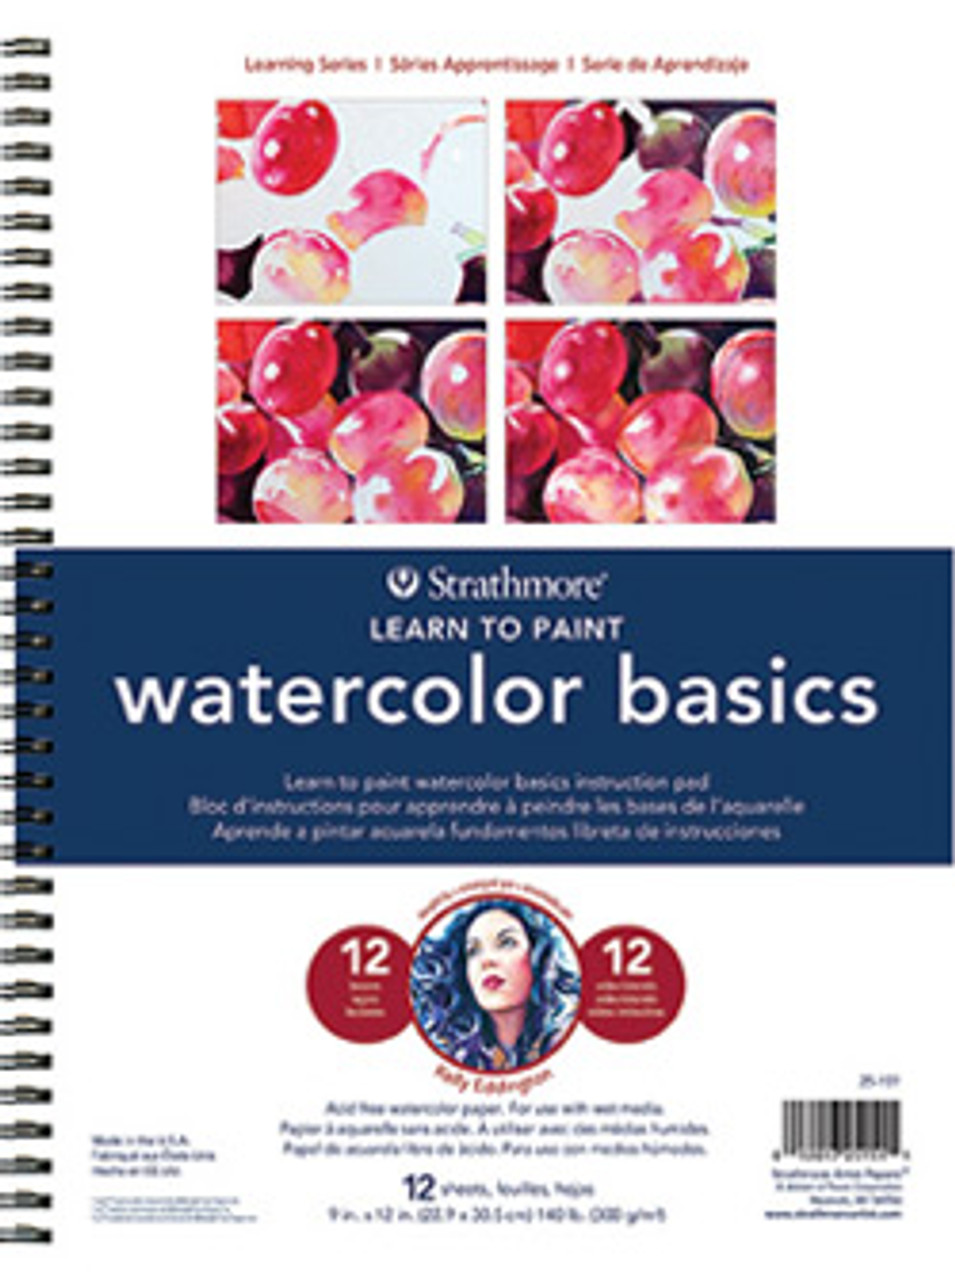 Learn To Paint - Watercolor Basics